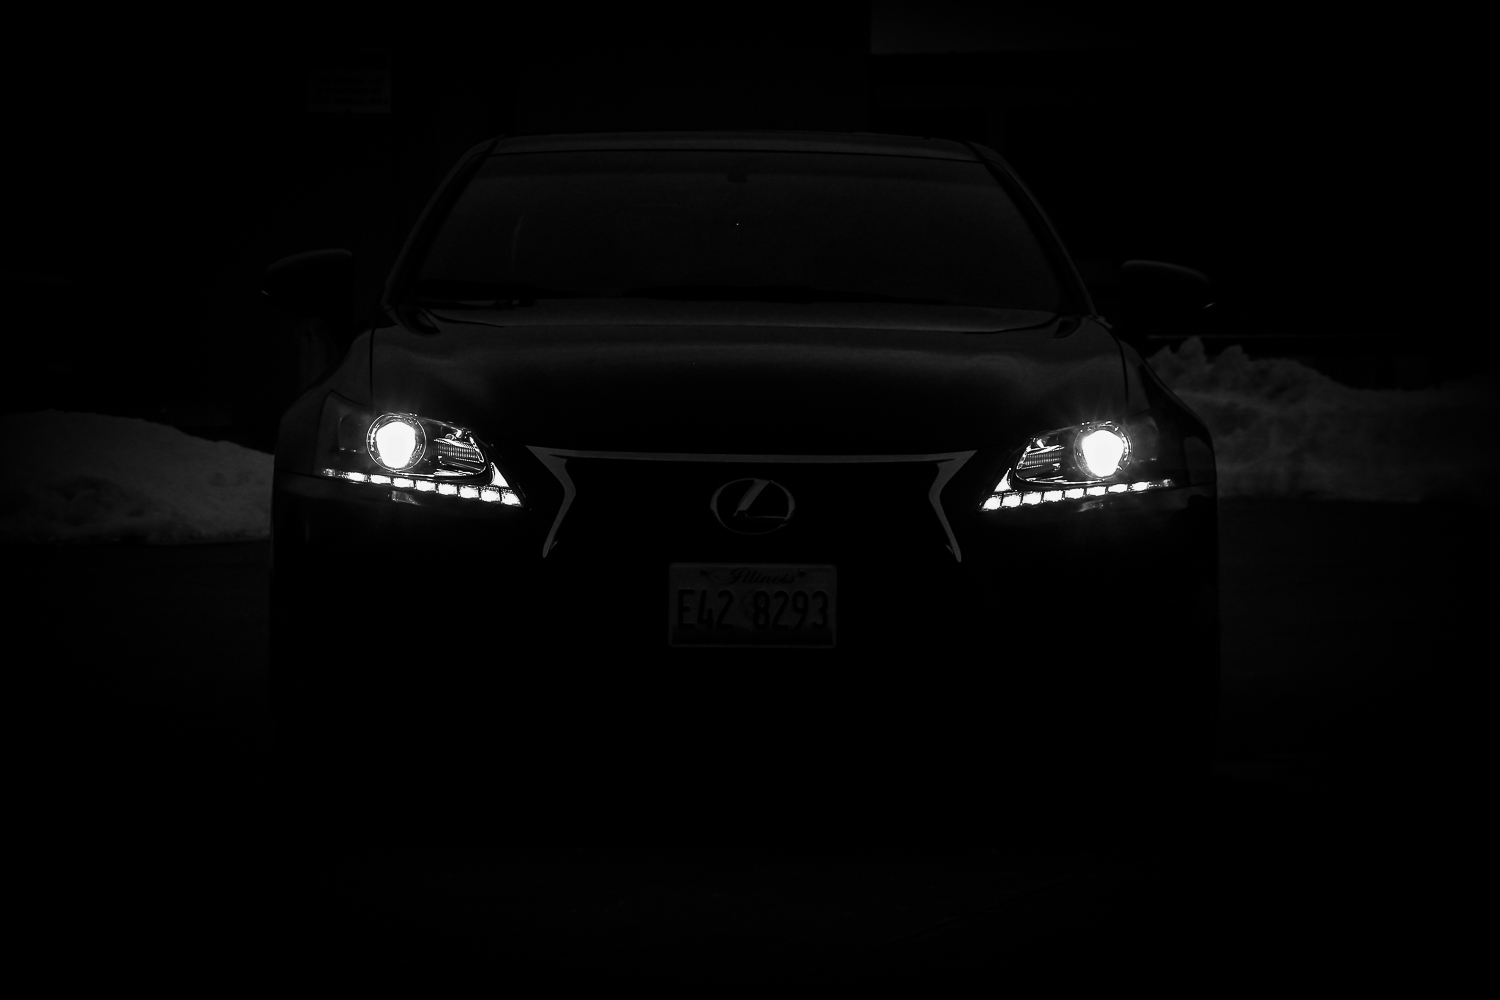 15.GS350.FSport-26.jpg